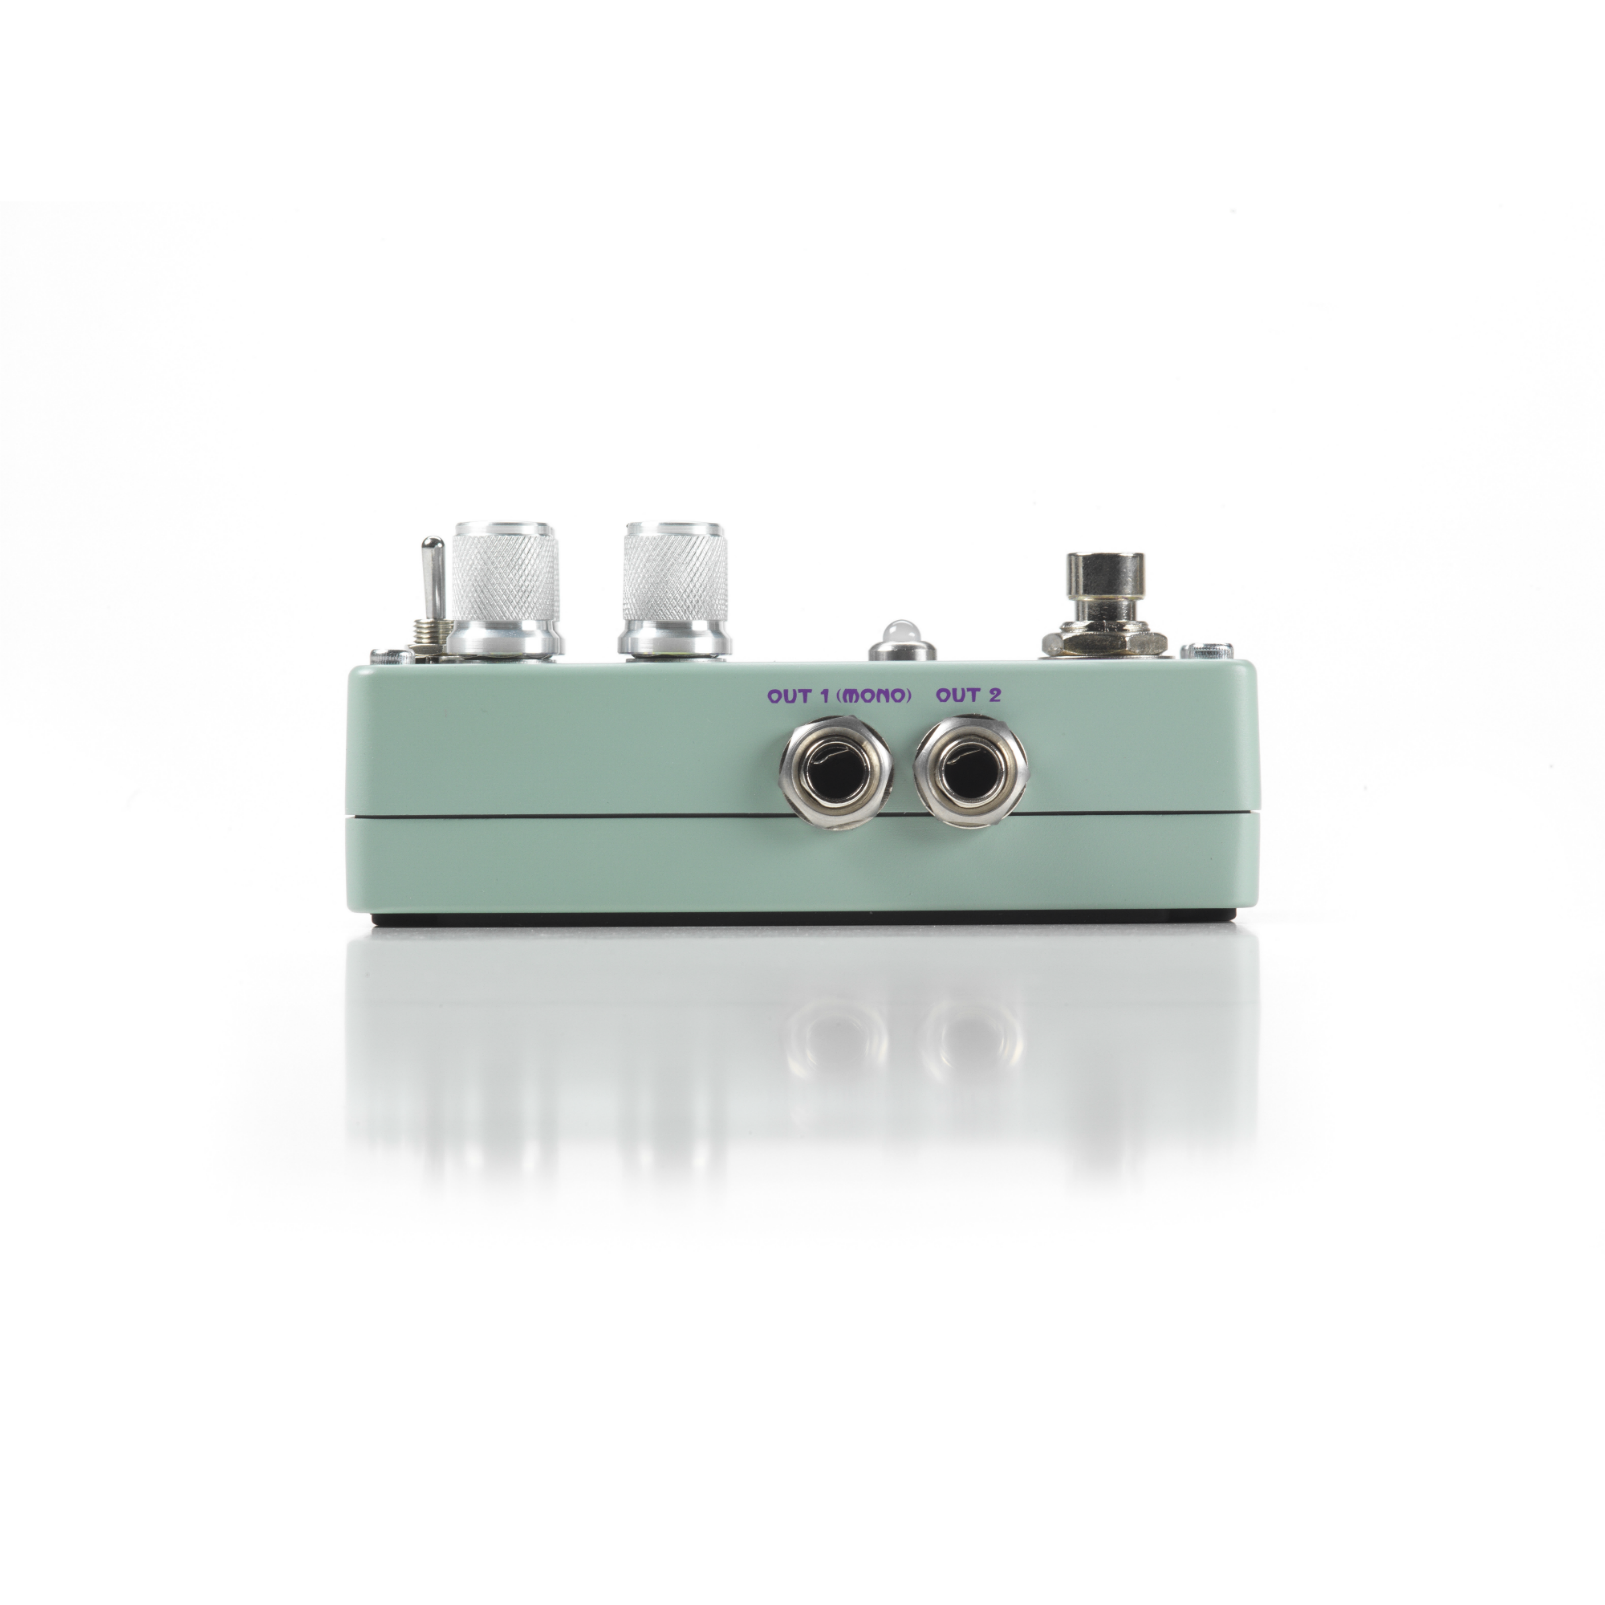 Polara (discontinued) - Green - Reverb Pedal - Left